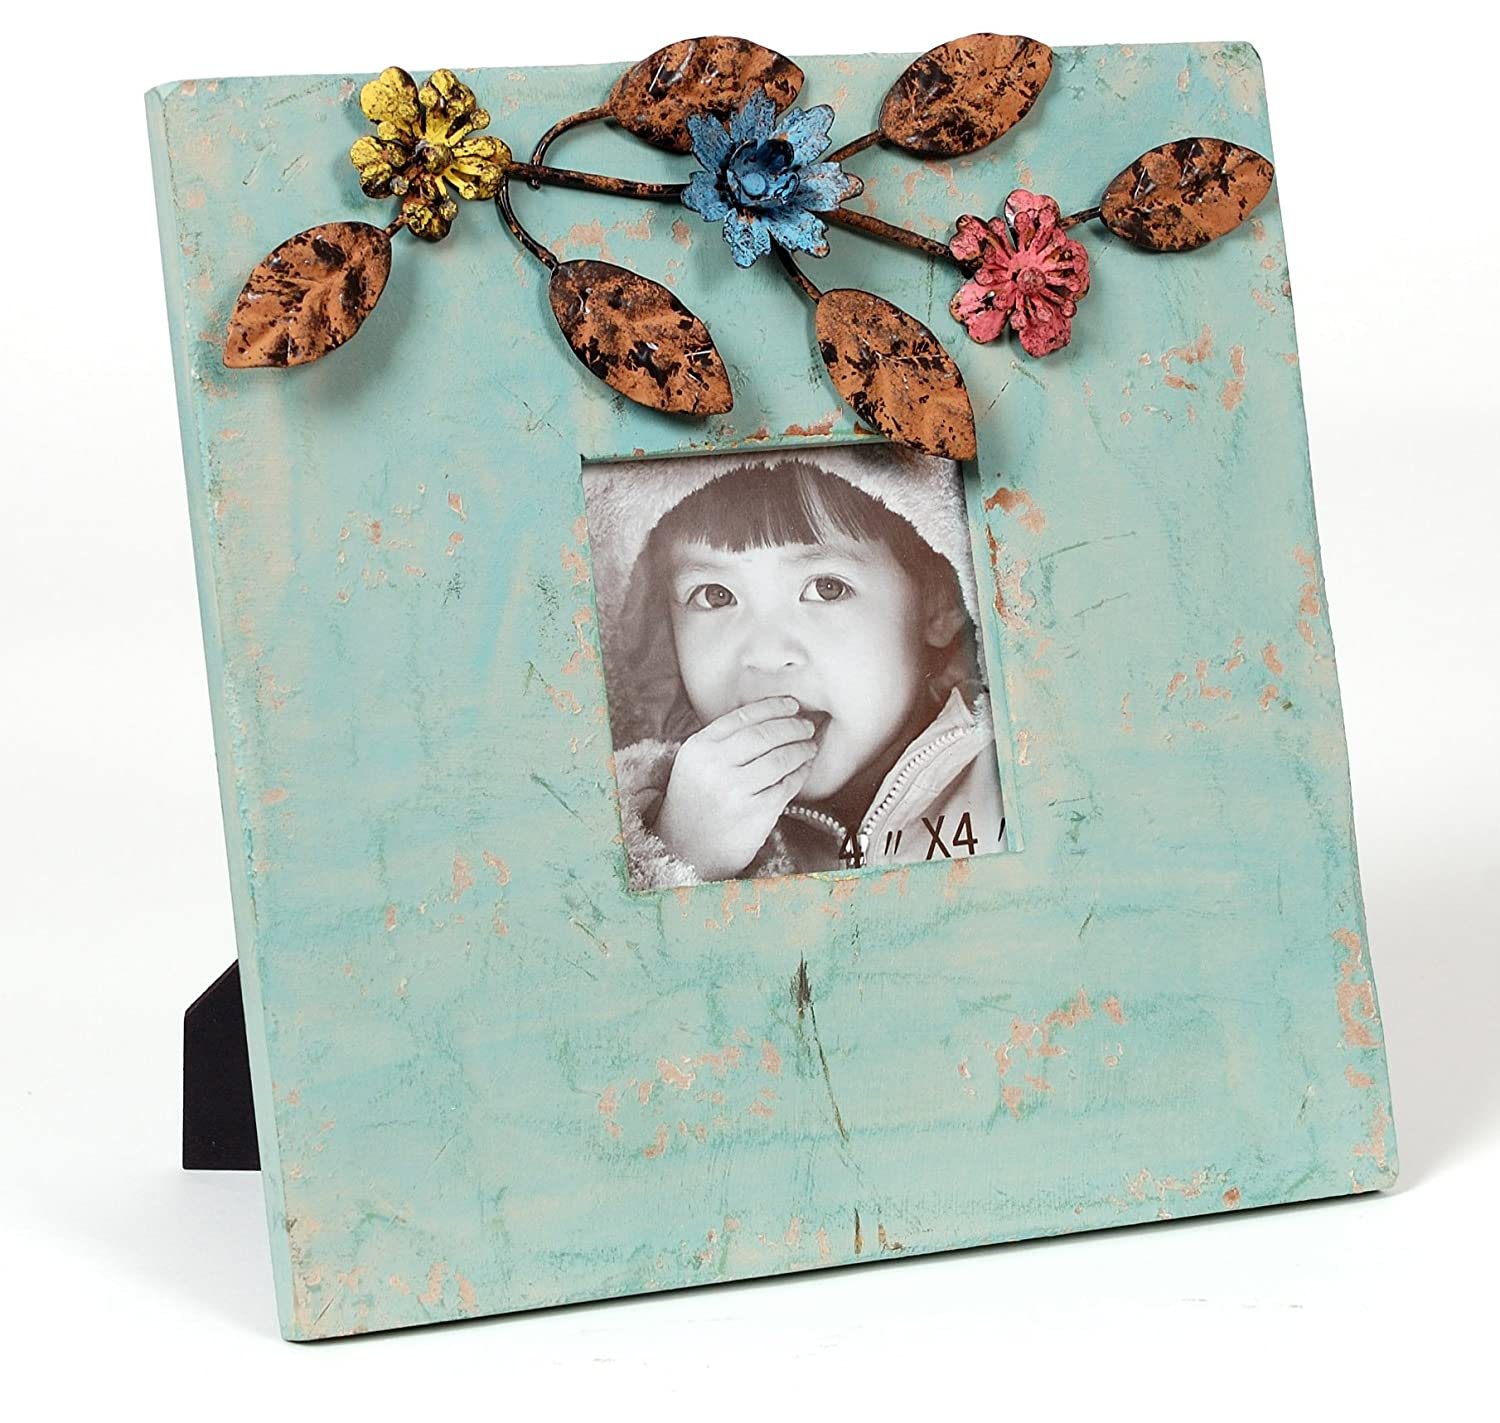 Wilco Imports Distressed Dusty Blue Color Wood Frame with Metal Floral Accents